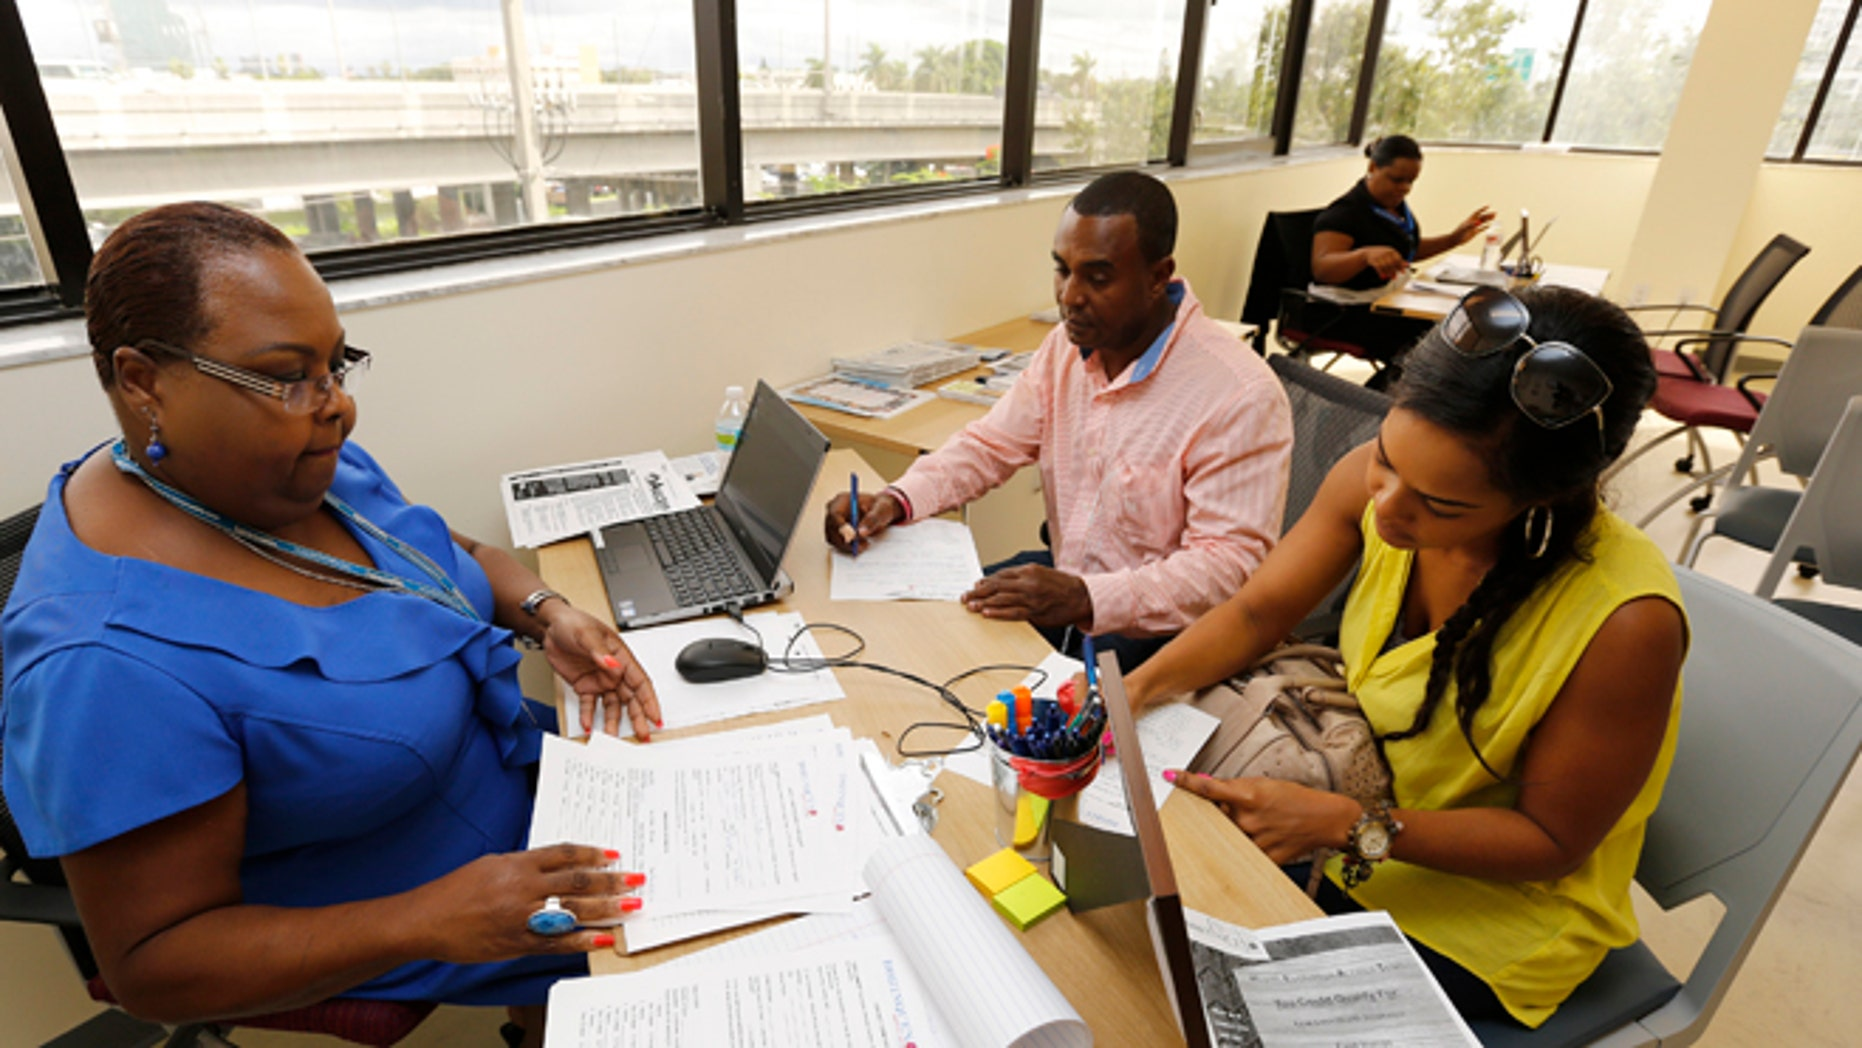 FILE: October 2, 2013: A certified application counselor takes information from two Florida residents about Affordable Care Act insurance, at the Borinquen Medical Center, in Miami, Fla.